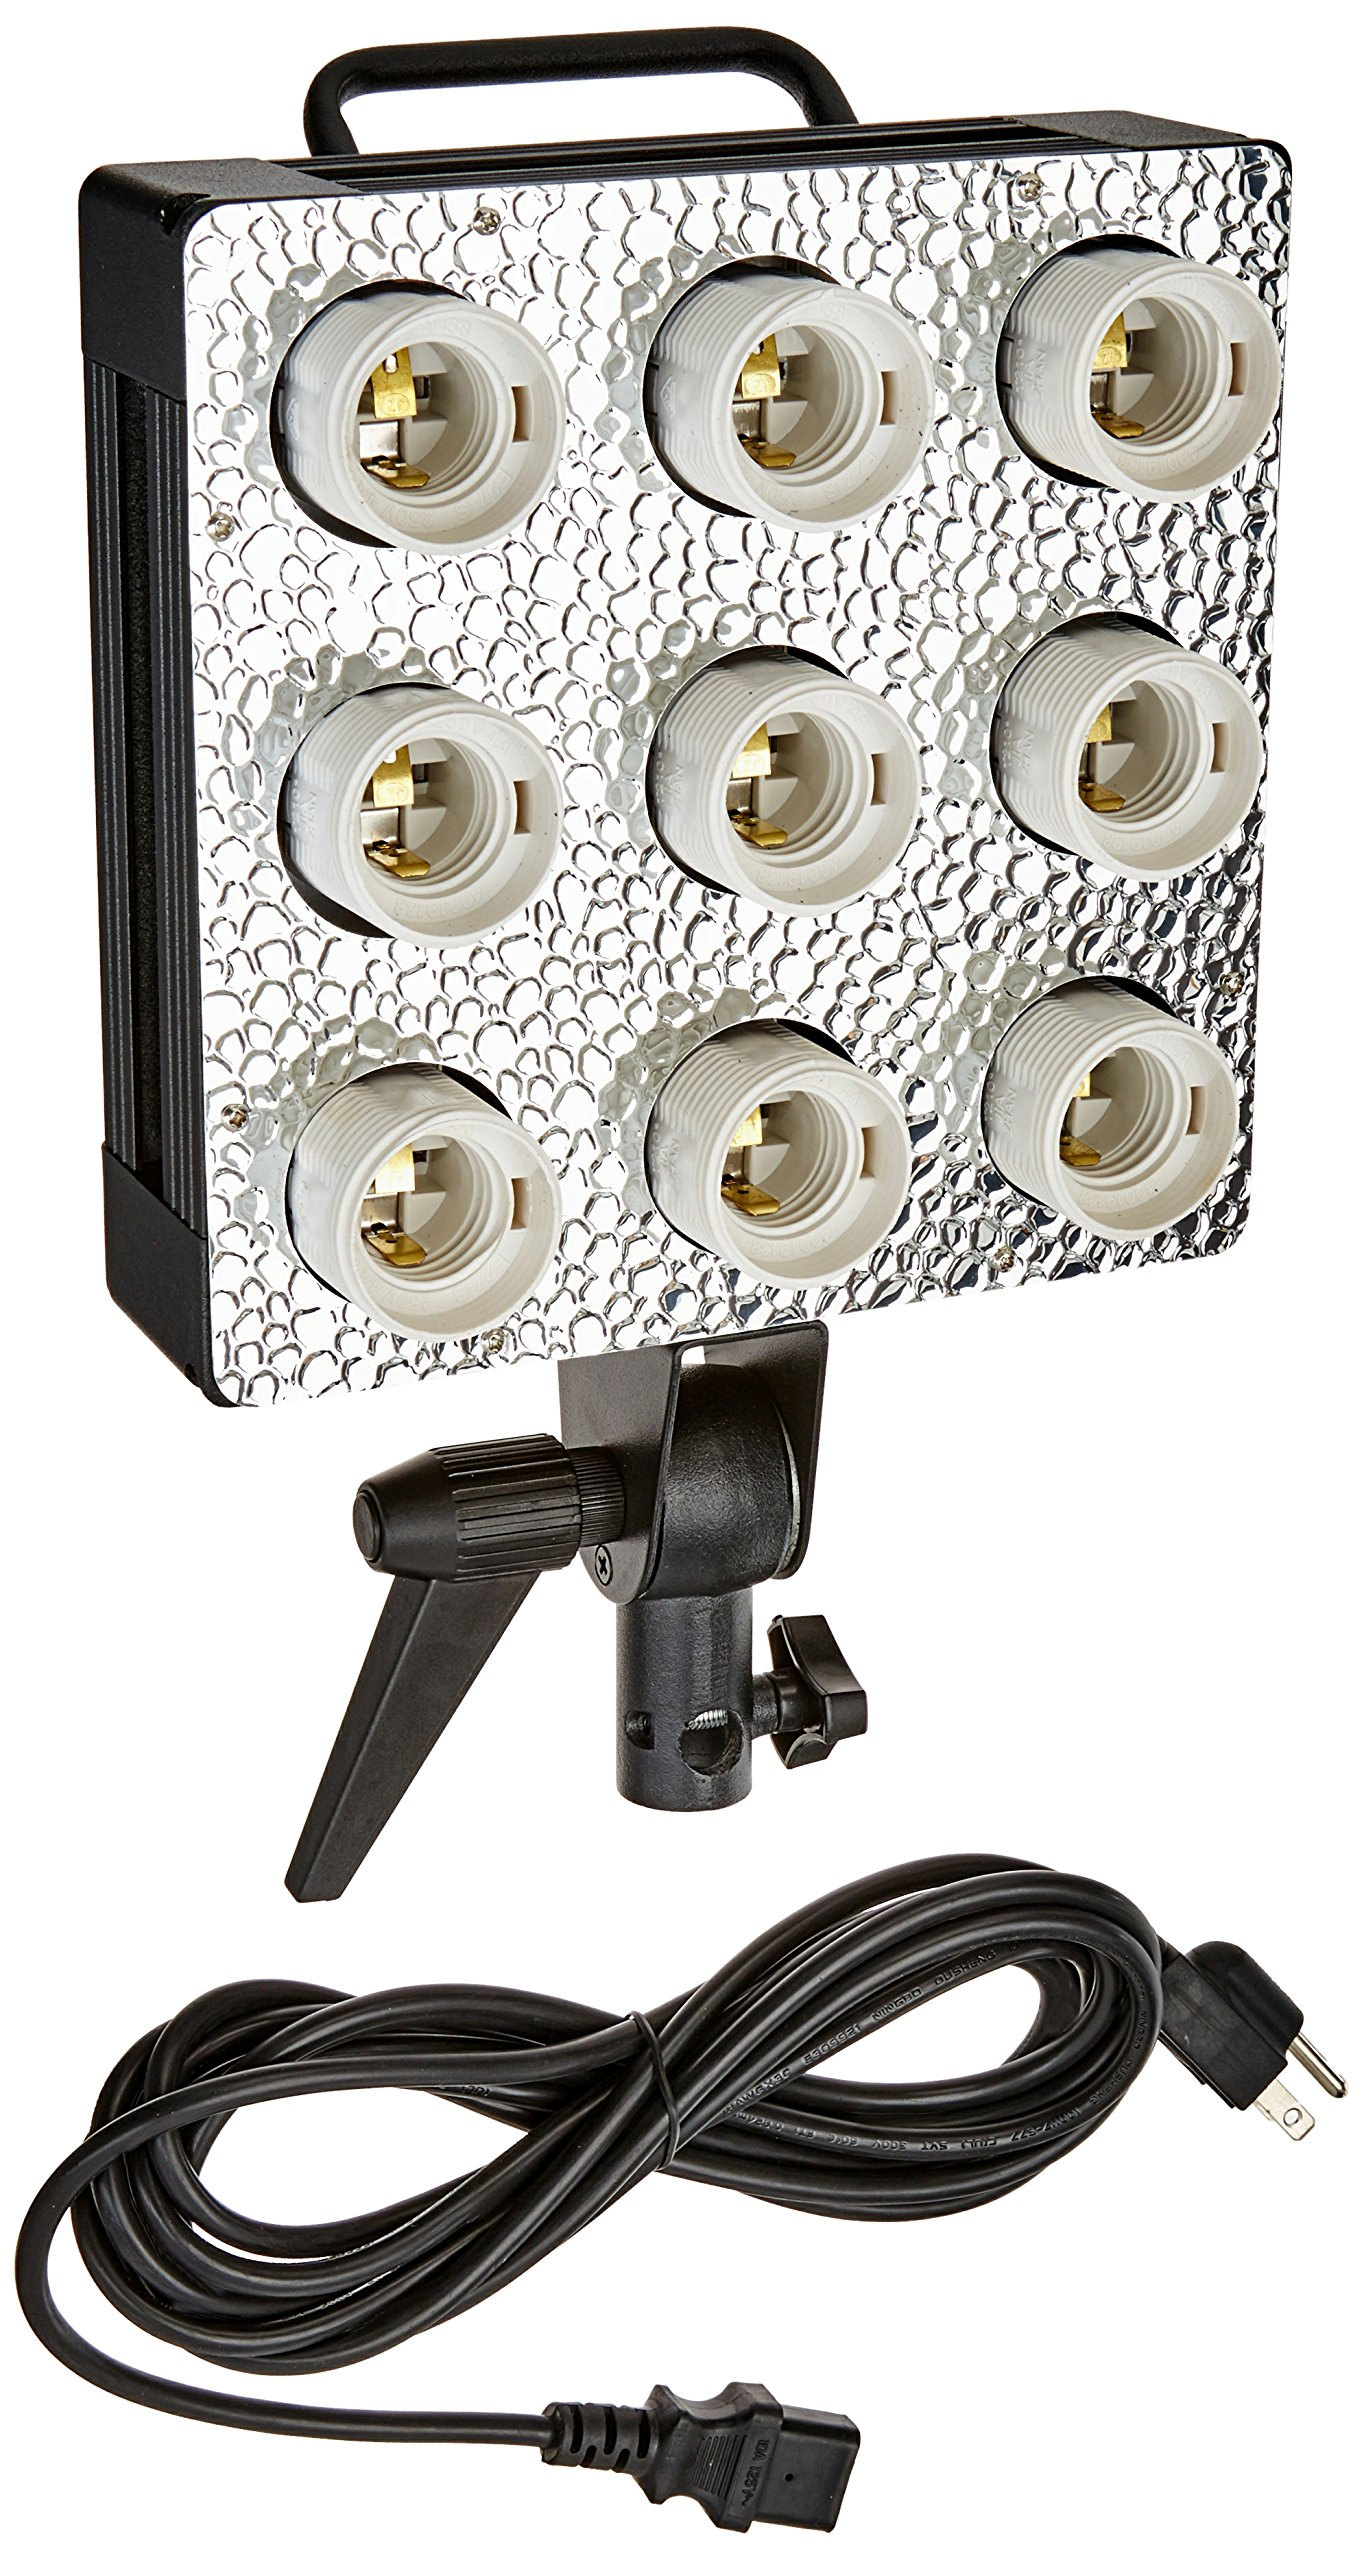 Fotodiox C-900 Cool Light Fixture - 9 Bulb Fixture w/Dedicated Softbox Mounting for Compact Fluorescent Bulbs